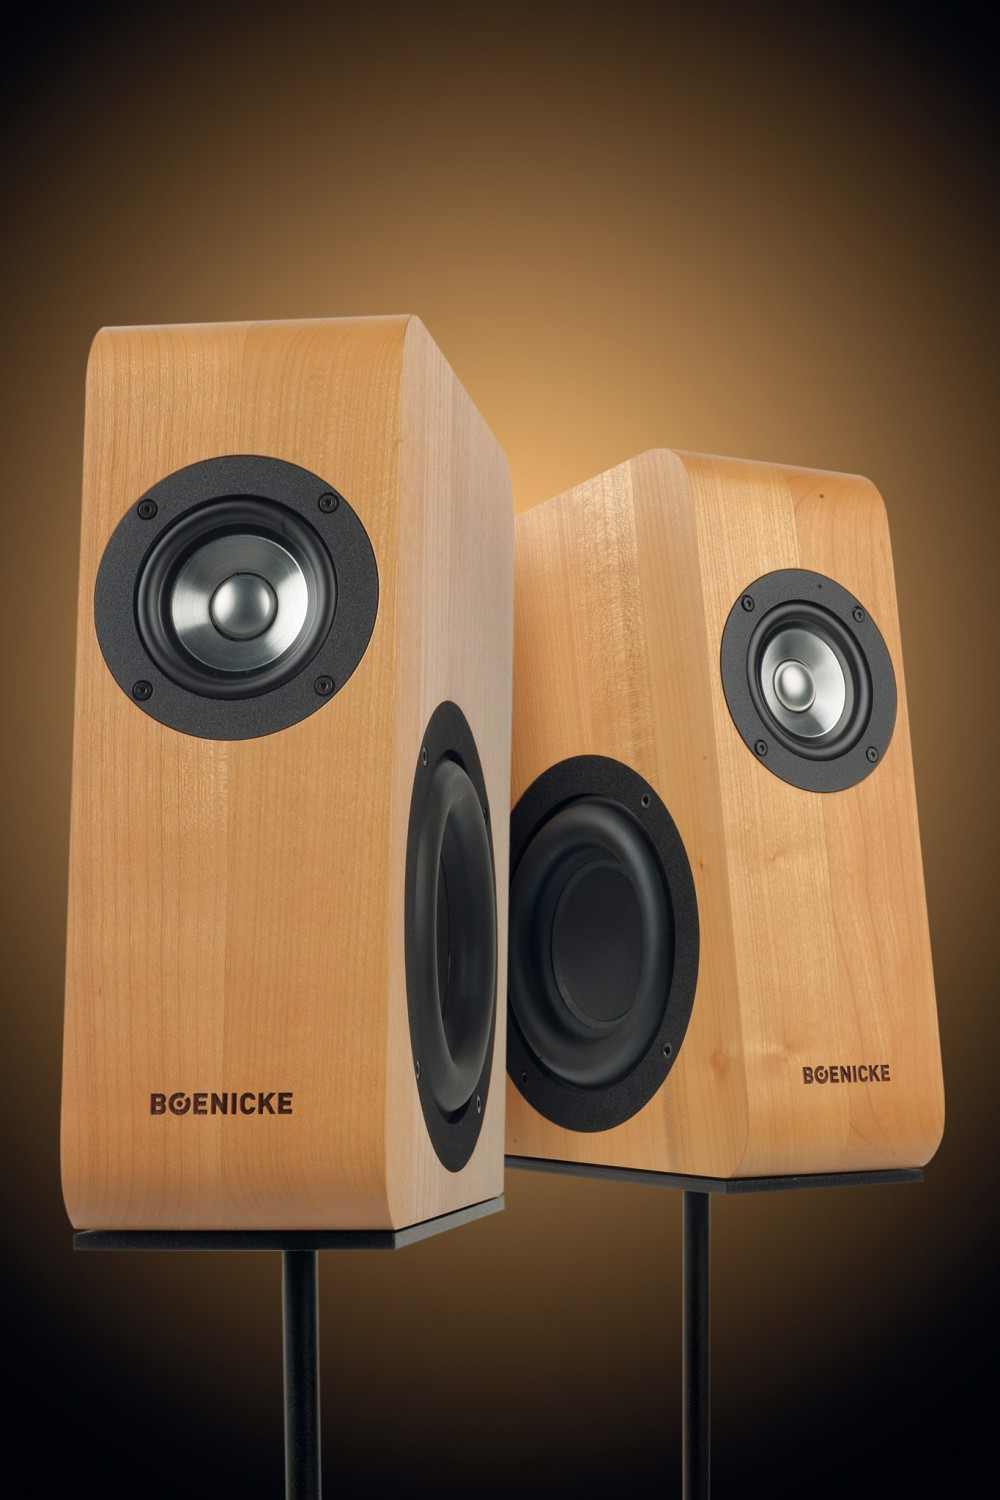 test lautsprecher stereo boenicke audio w5 seite 1. Black Bedroom Furniture Sets. Home Design Ideas